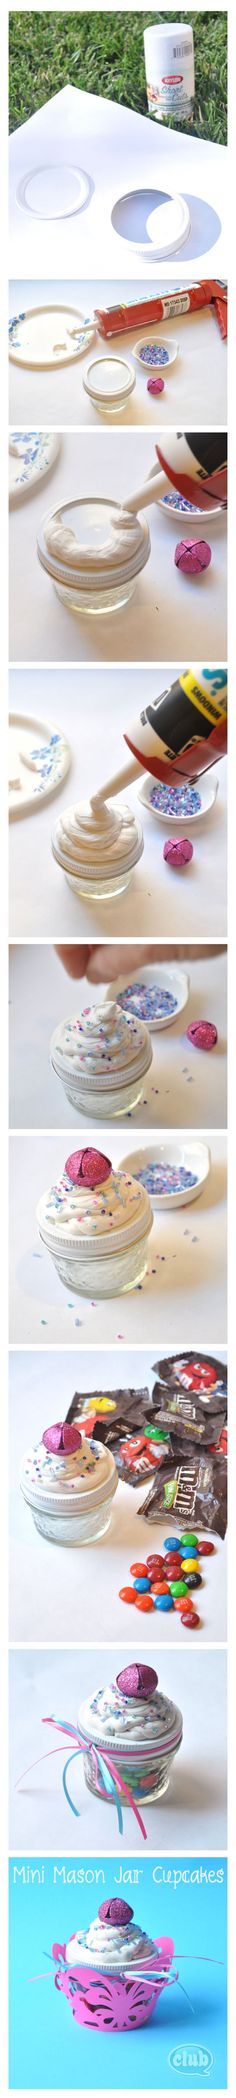 DIY Mason jar cupcakes! Perfect for birthday gifts